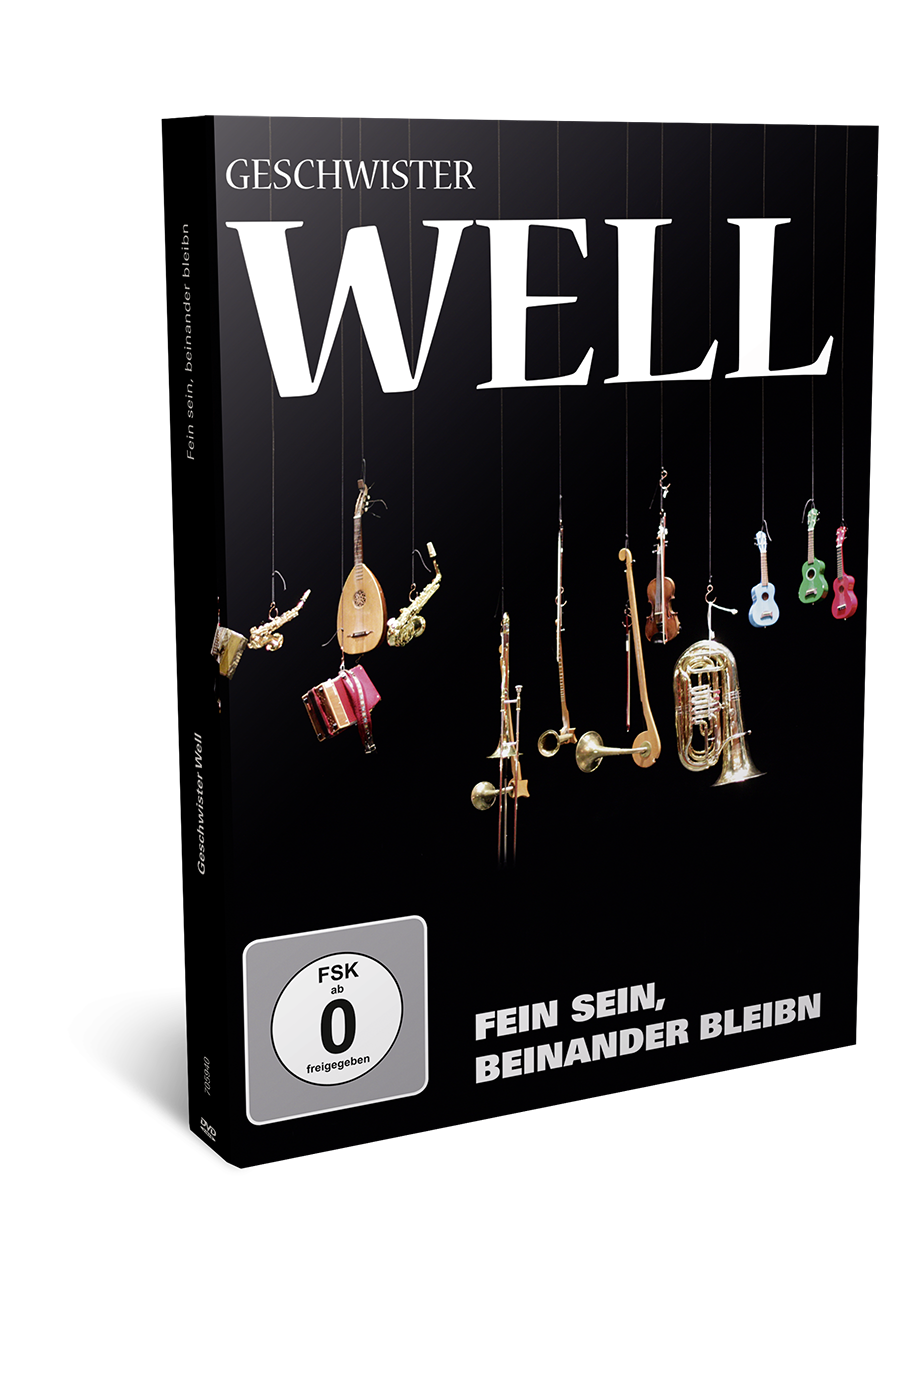 DVD Geschwister Well - fein sein beinander bleibn - Well Musik 2013